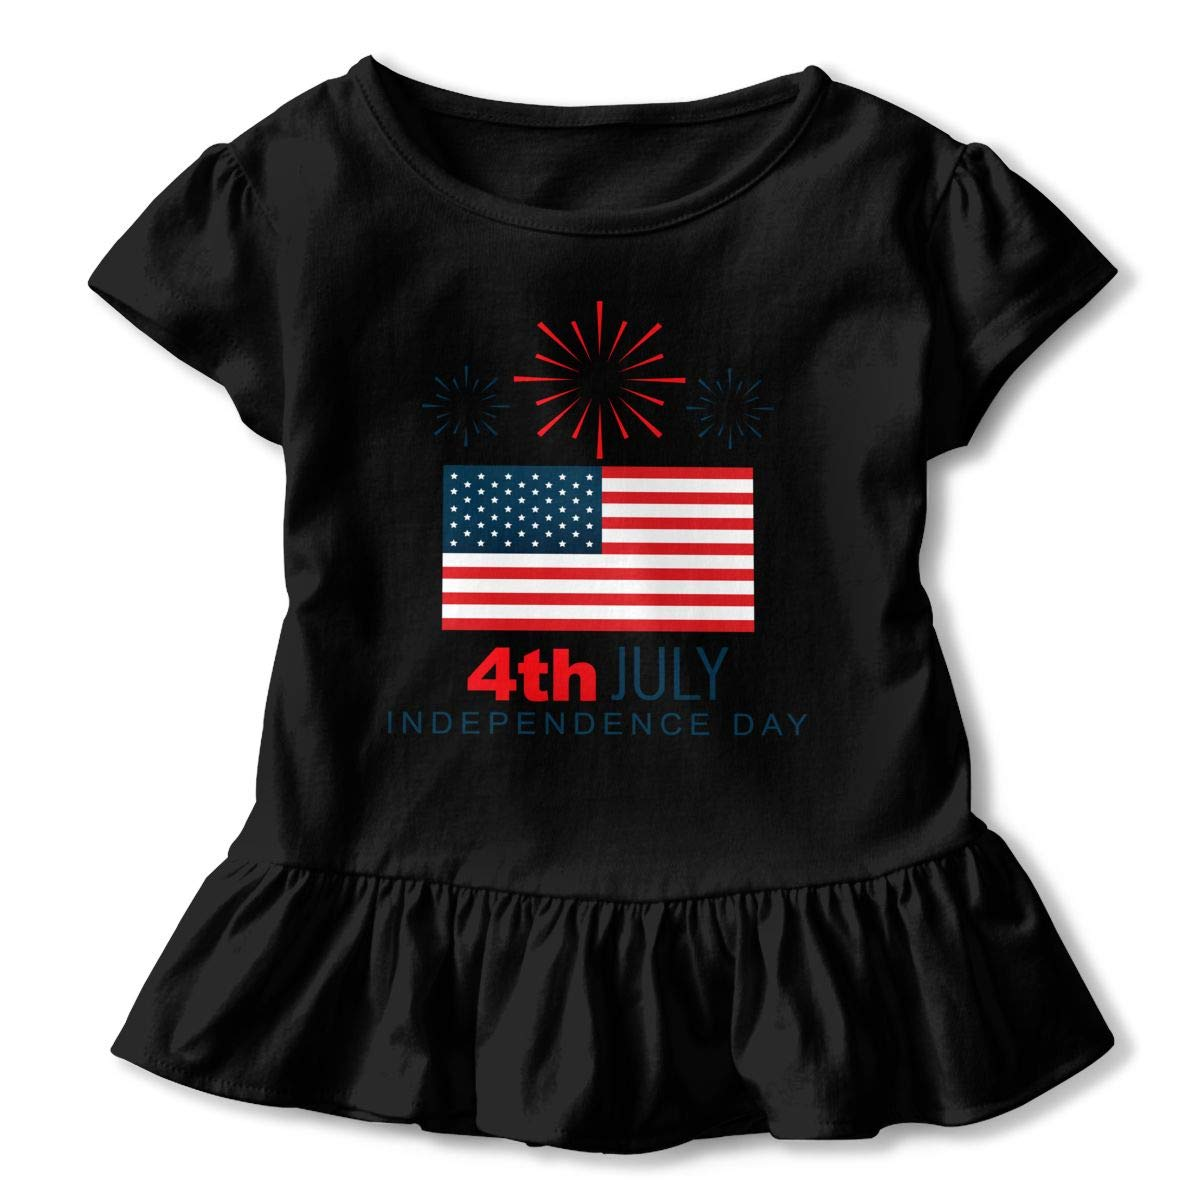 JVNSS Declaration-of-Independence Printed Kids Flounced T Shirts Graphic T-Shirt for 2-6T Kids Girls